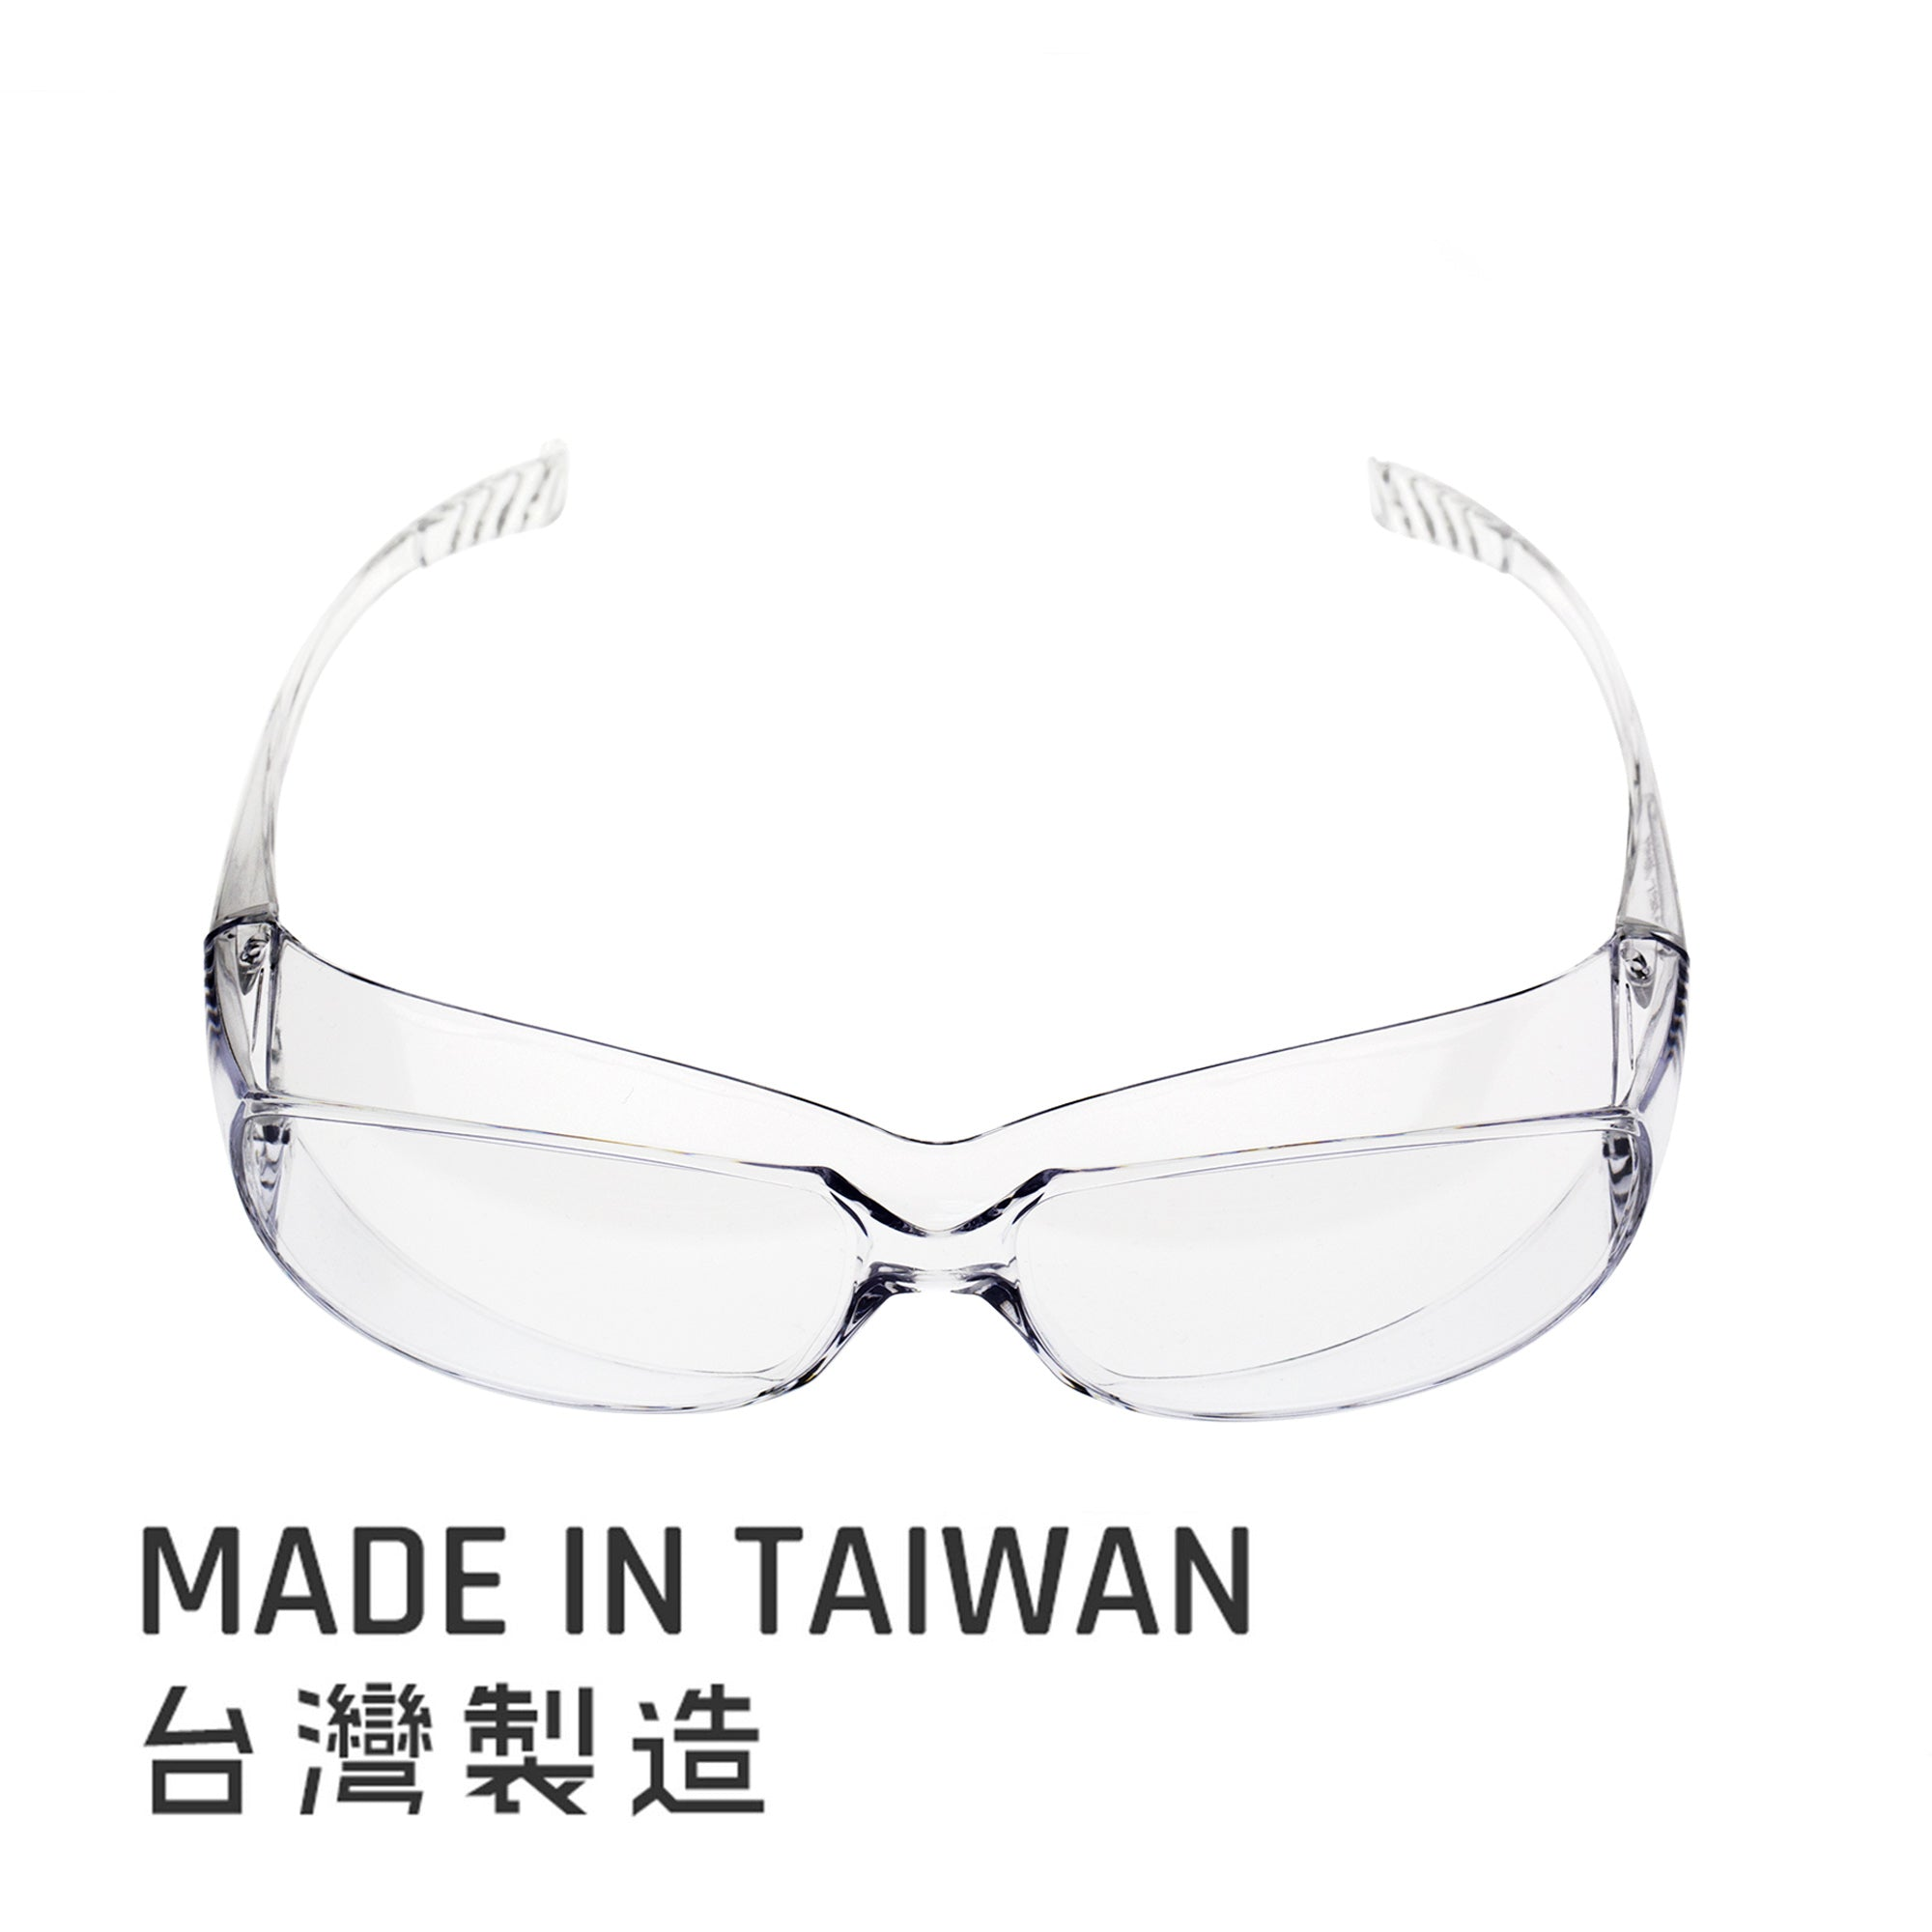 台灣製造 抗飛濺防護眼鏡 L03 | Protective Splash Eyewear L03 Made in Taiwan